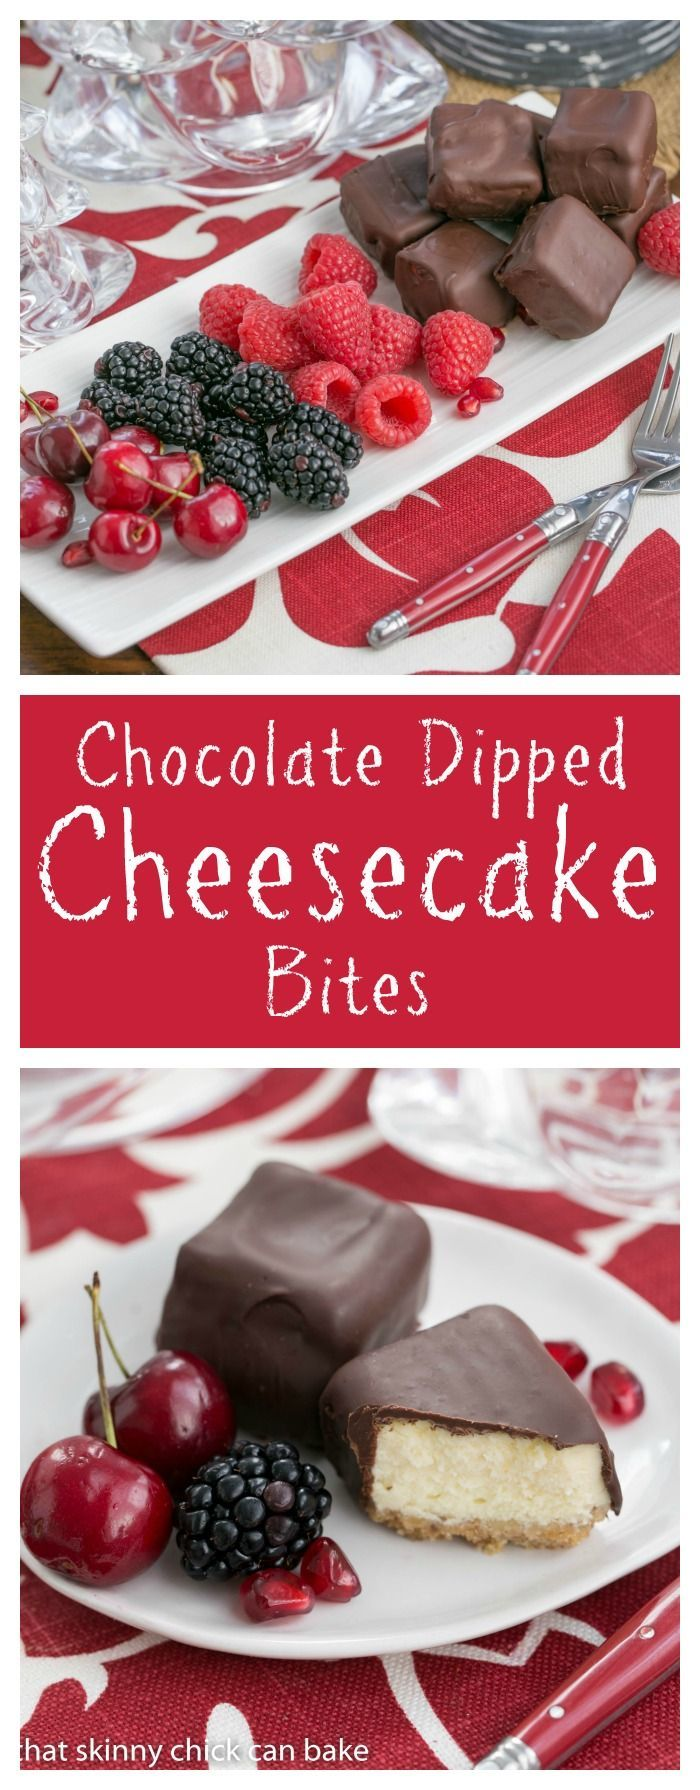 Chocolate Dipped Cheesecake Bites   Exquisite, bite-sized gems for your holiday buffet! thatskinnychickcanbake.com @That Skinny Chick Can Bake!!! #SundaySupper